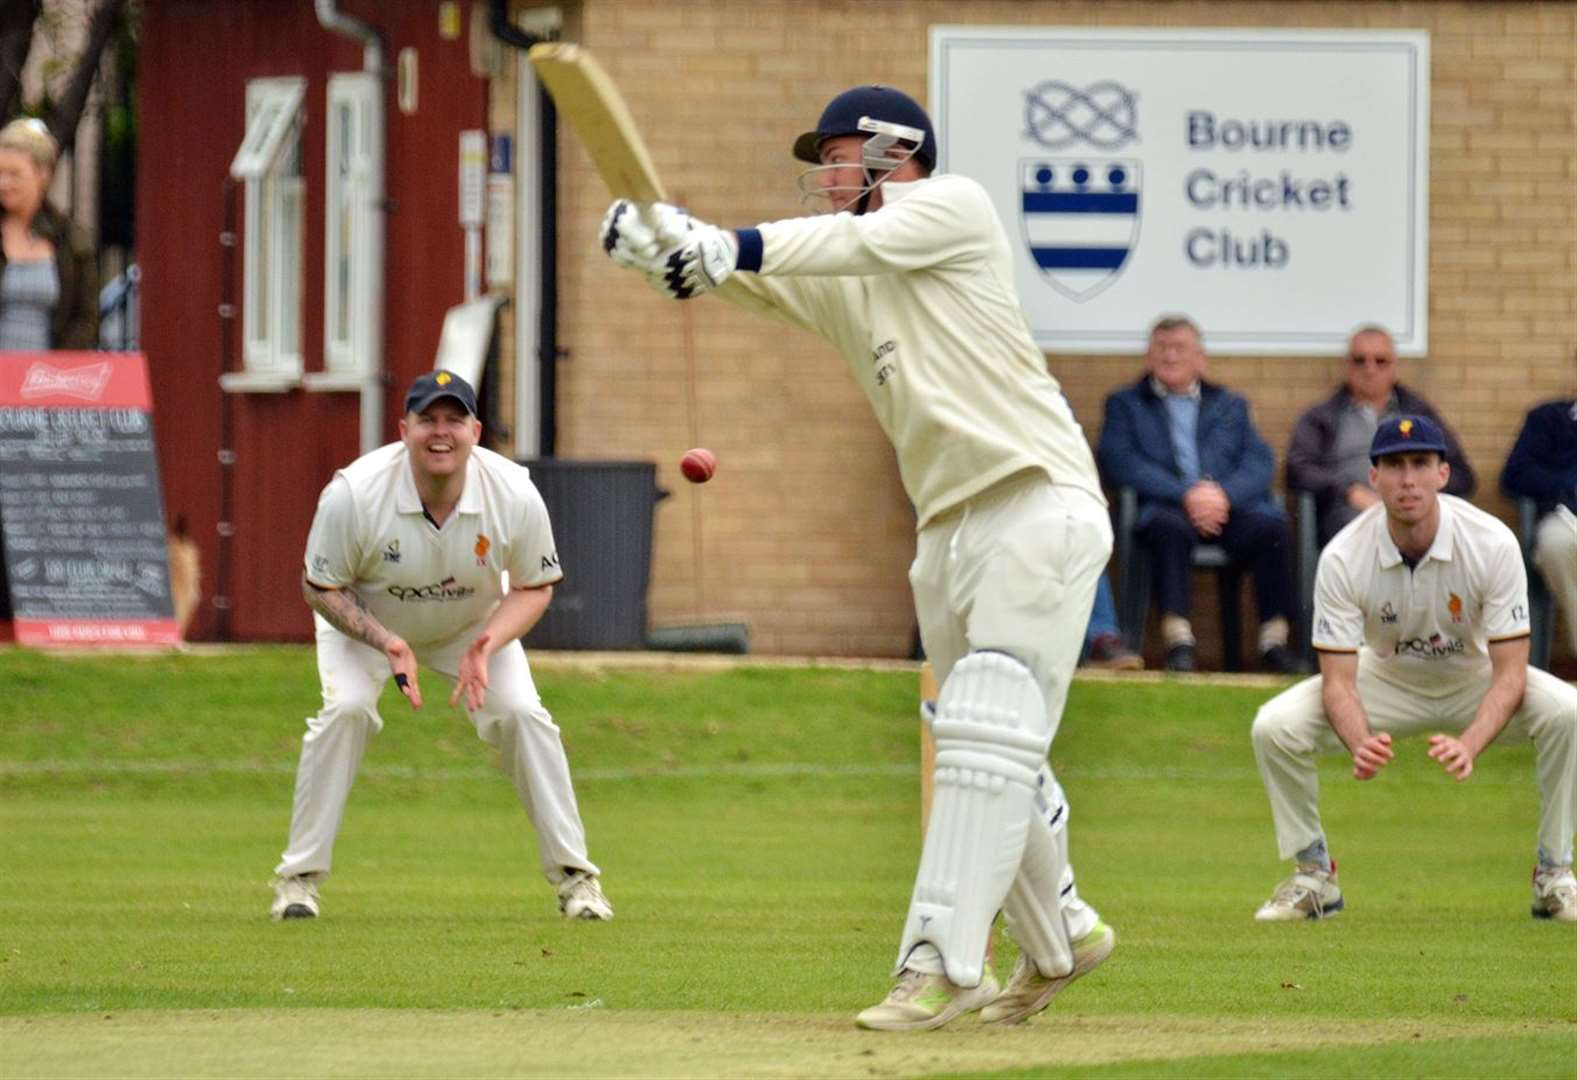 CRICKET: Third successive victory for Bourne after nail-biting home triumph